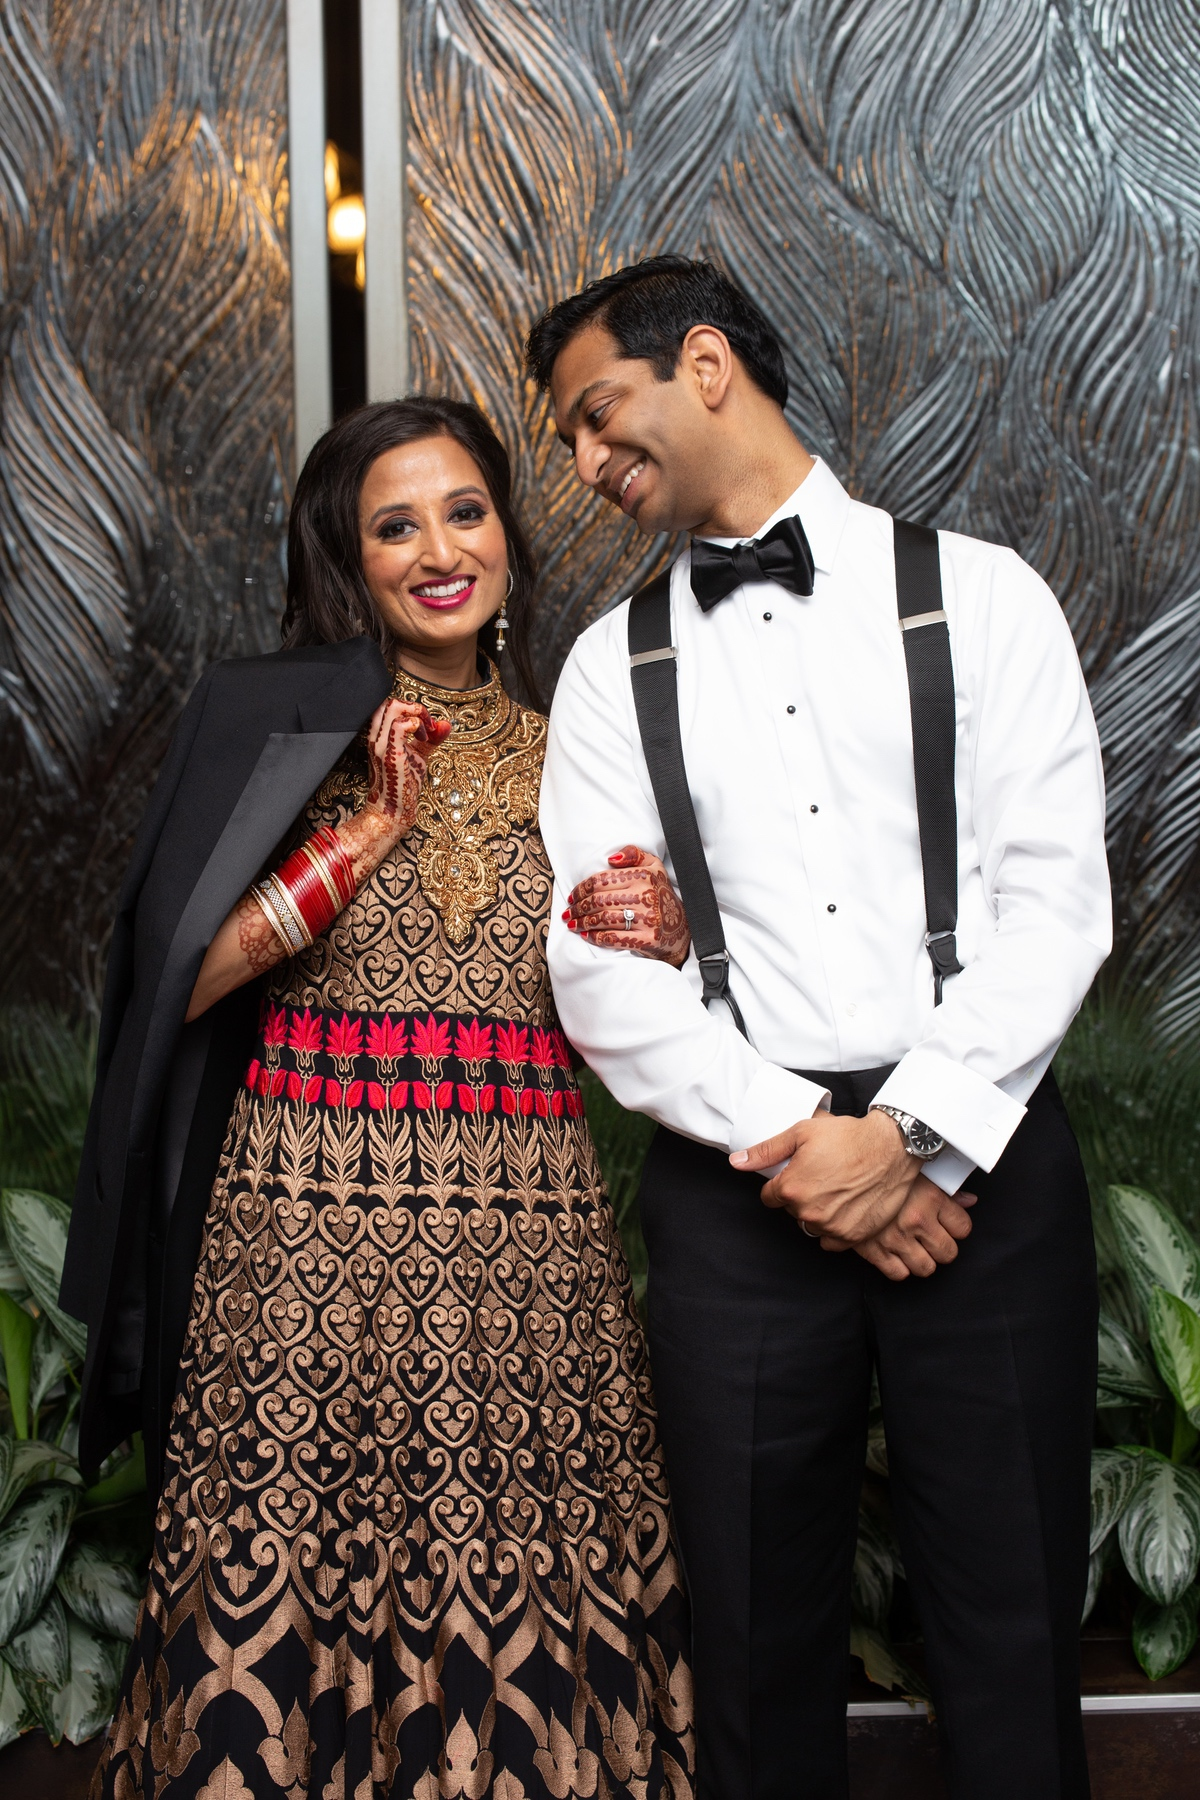 Le Cape Weddings - South Asian Wedding - Chicago Wedding Photographer P&V-103.jpg